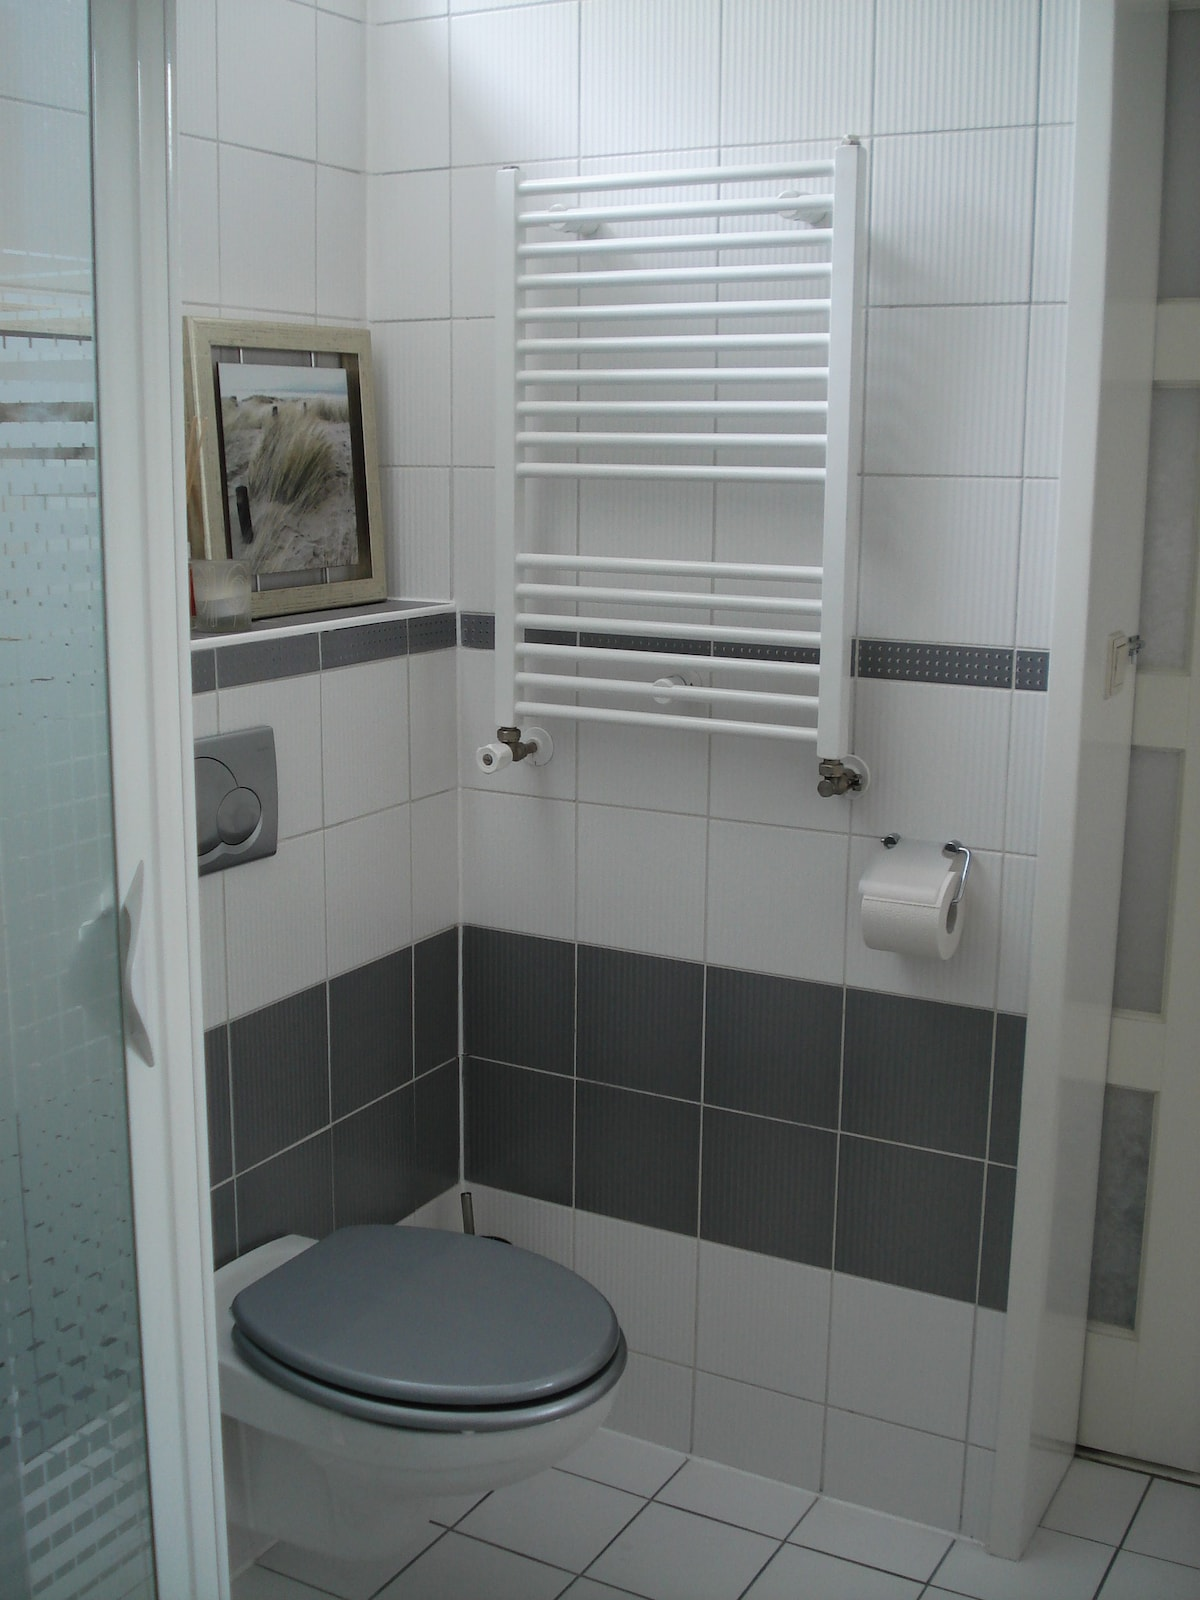 ... Your Own Toilet And Heating In The Bathroom